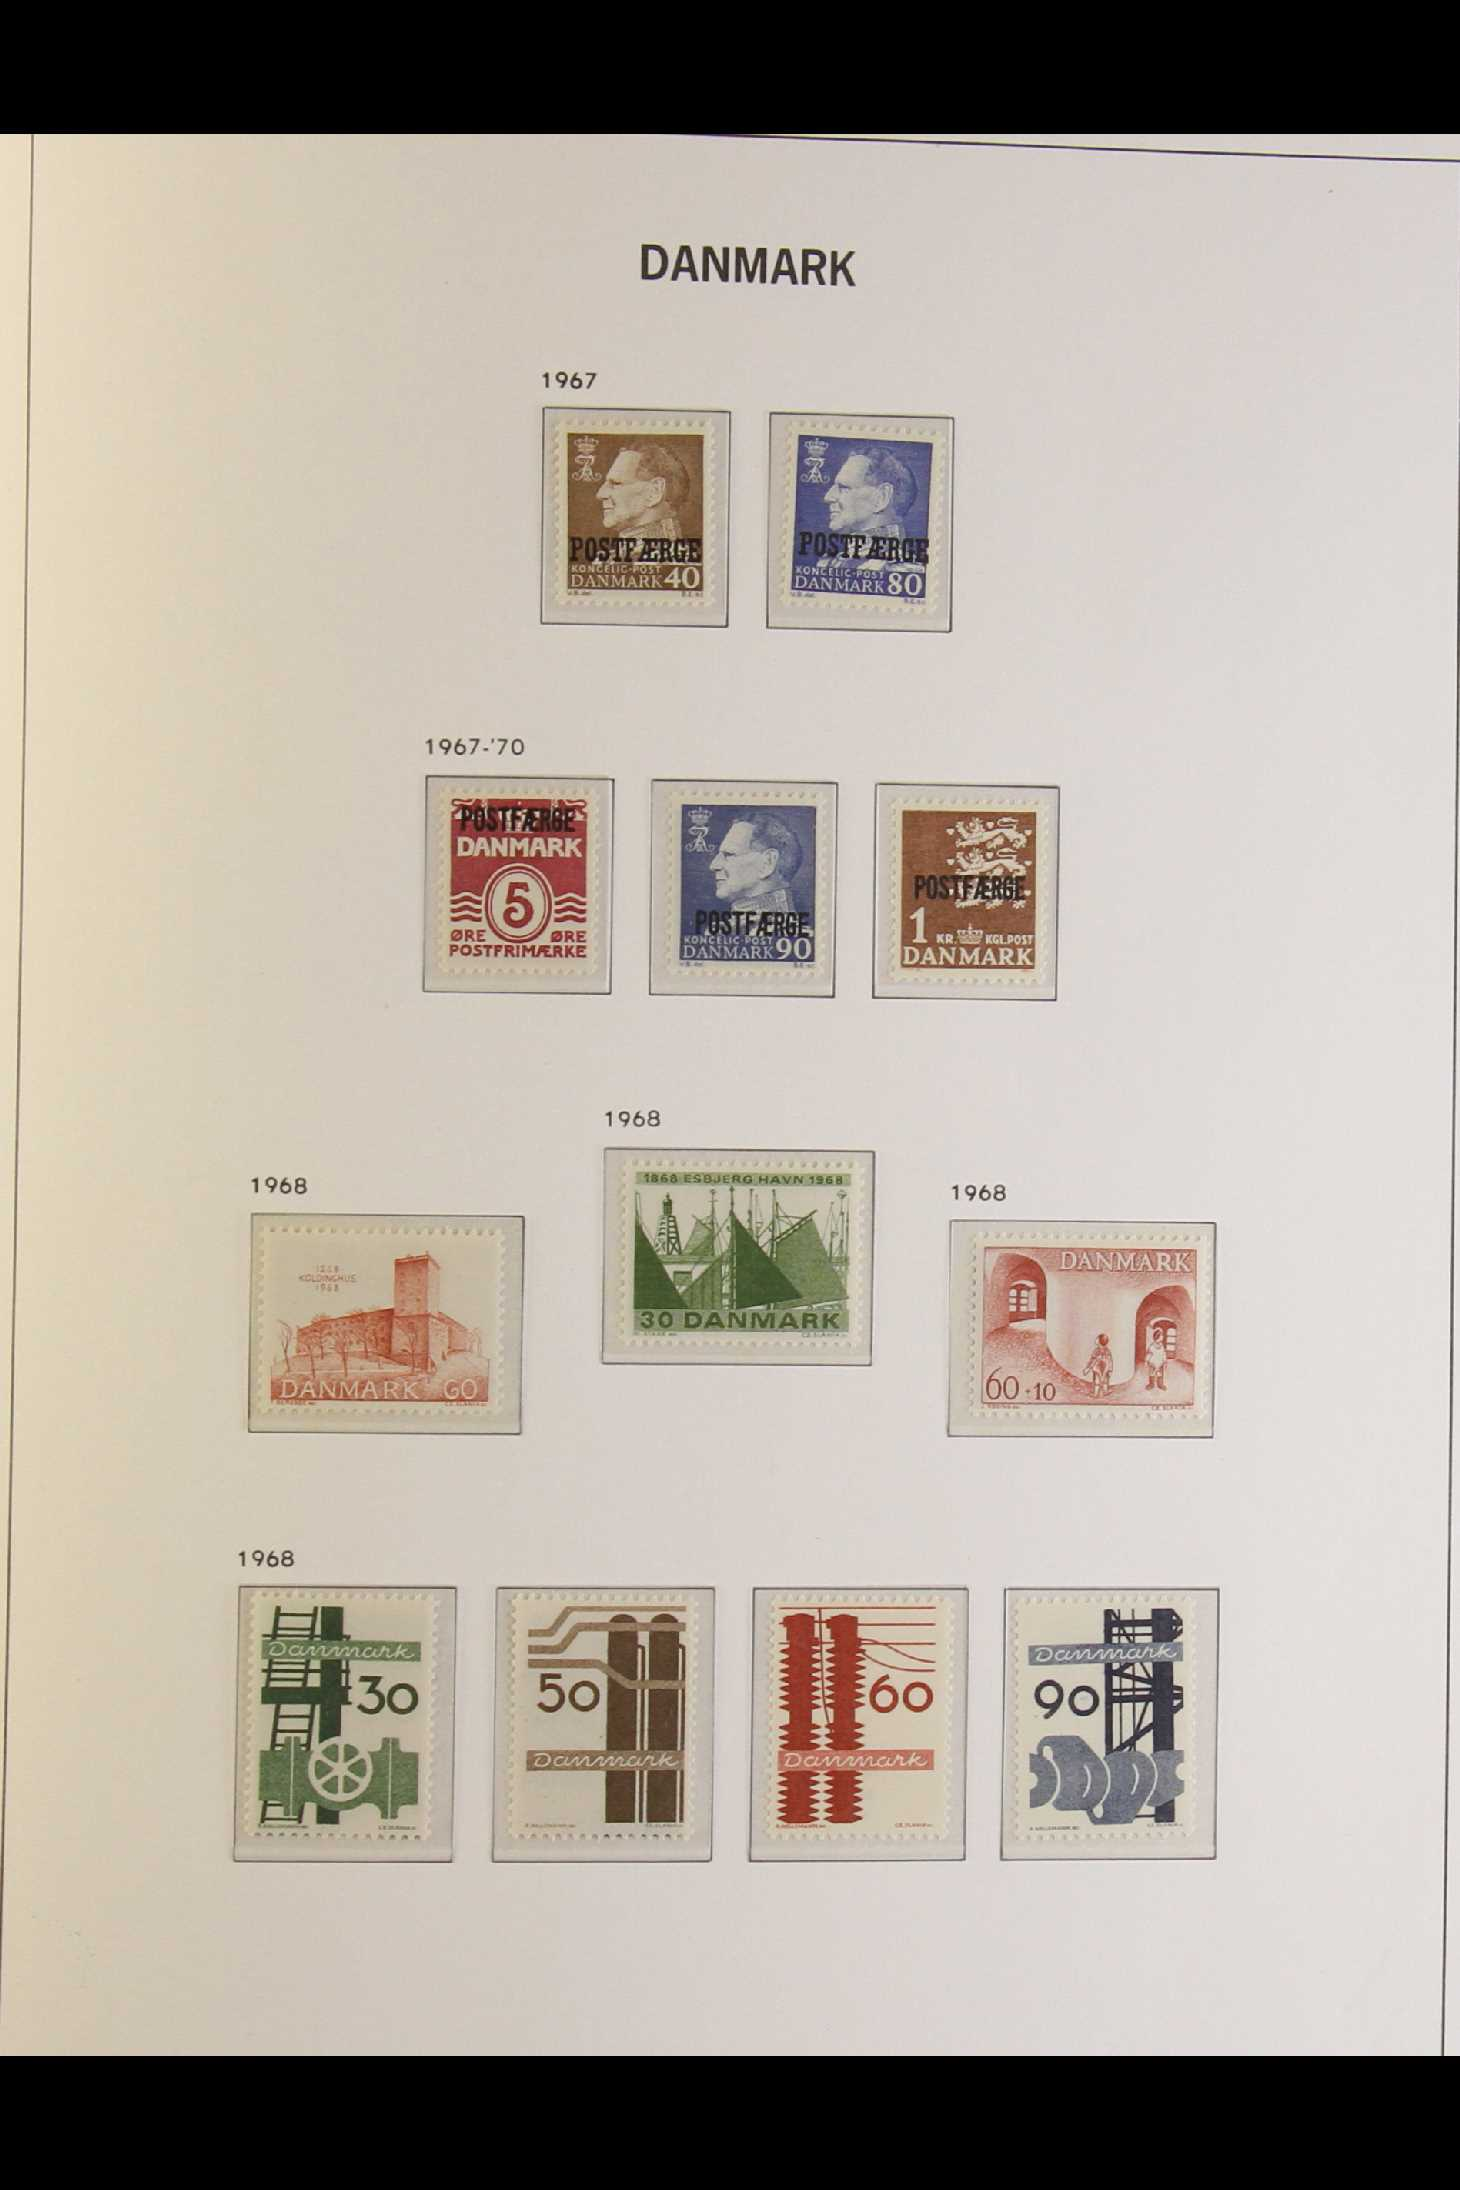 DENMARK 1882-1969 mint and used collection in an album incl. 1882 (small corner figures) 5 ore and - Image 12 of 15